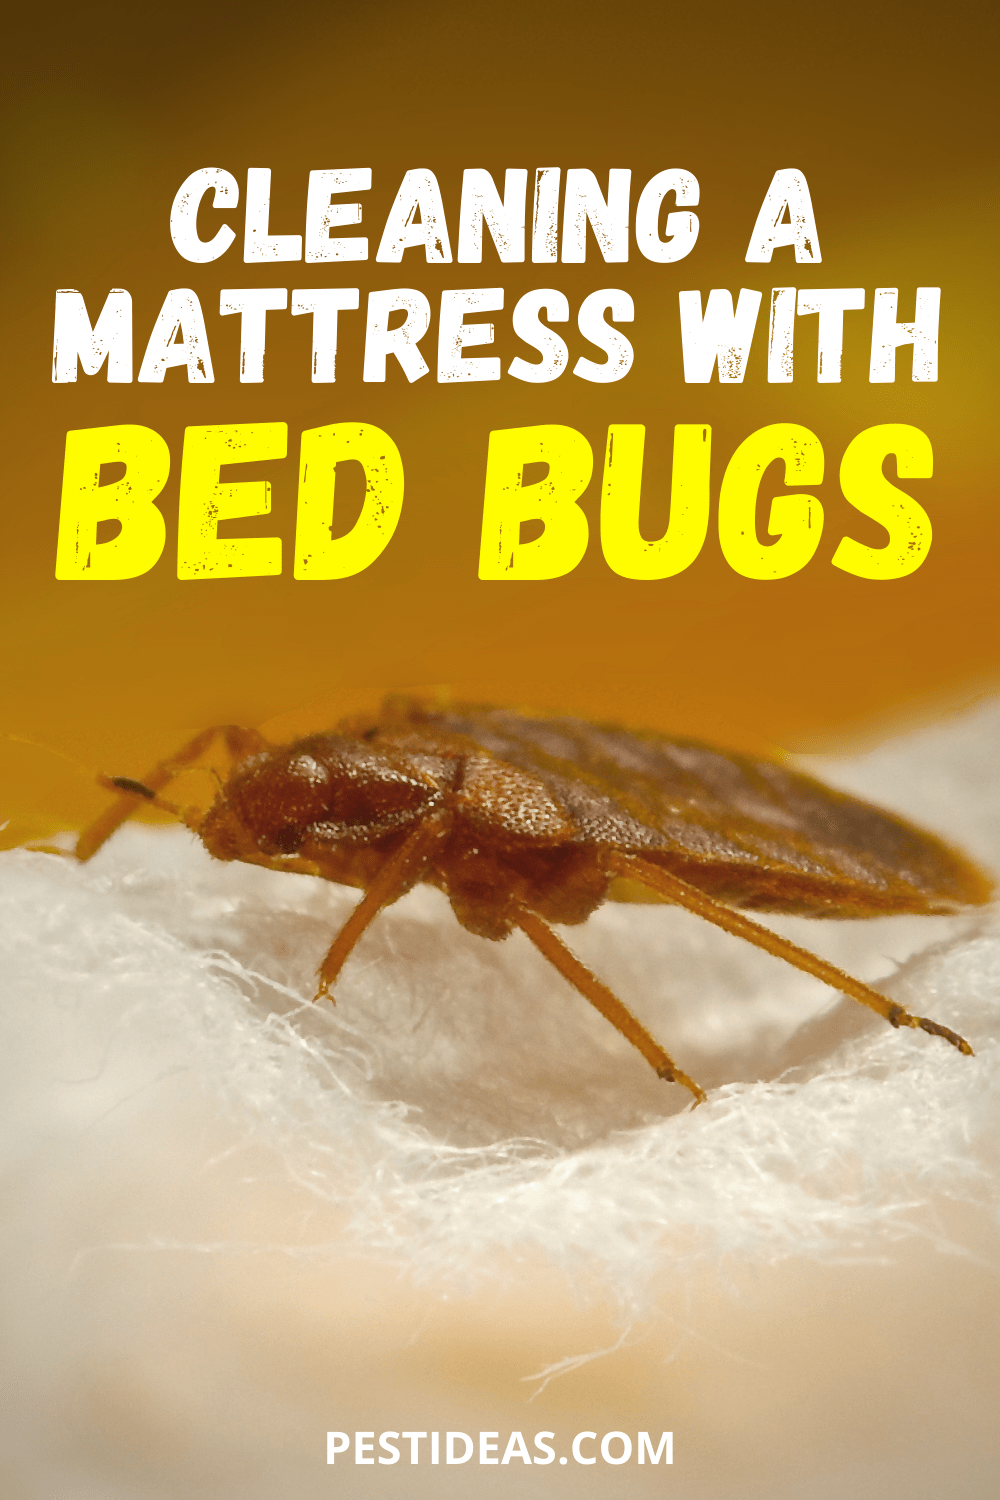 Cleaning a Mattress With Bed Bugs